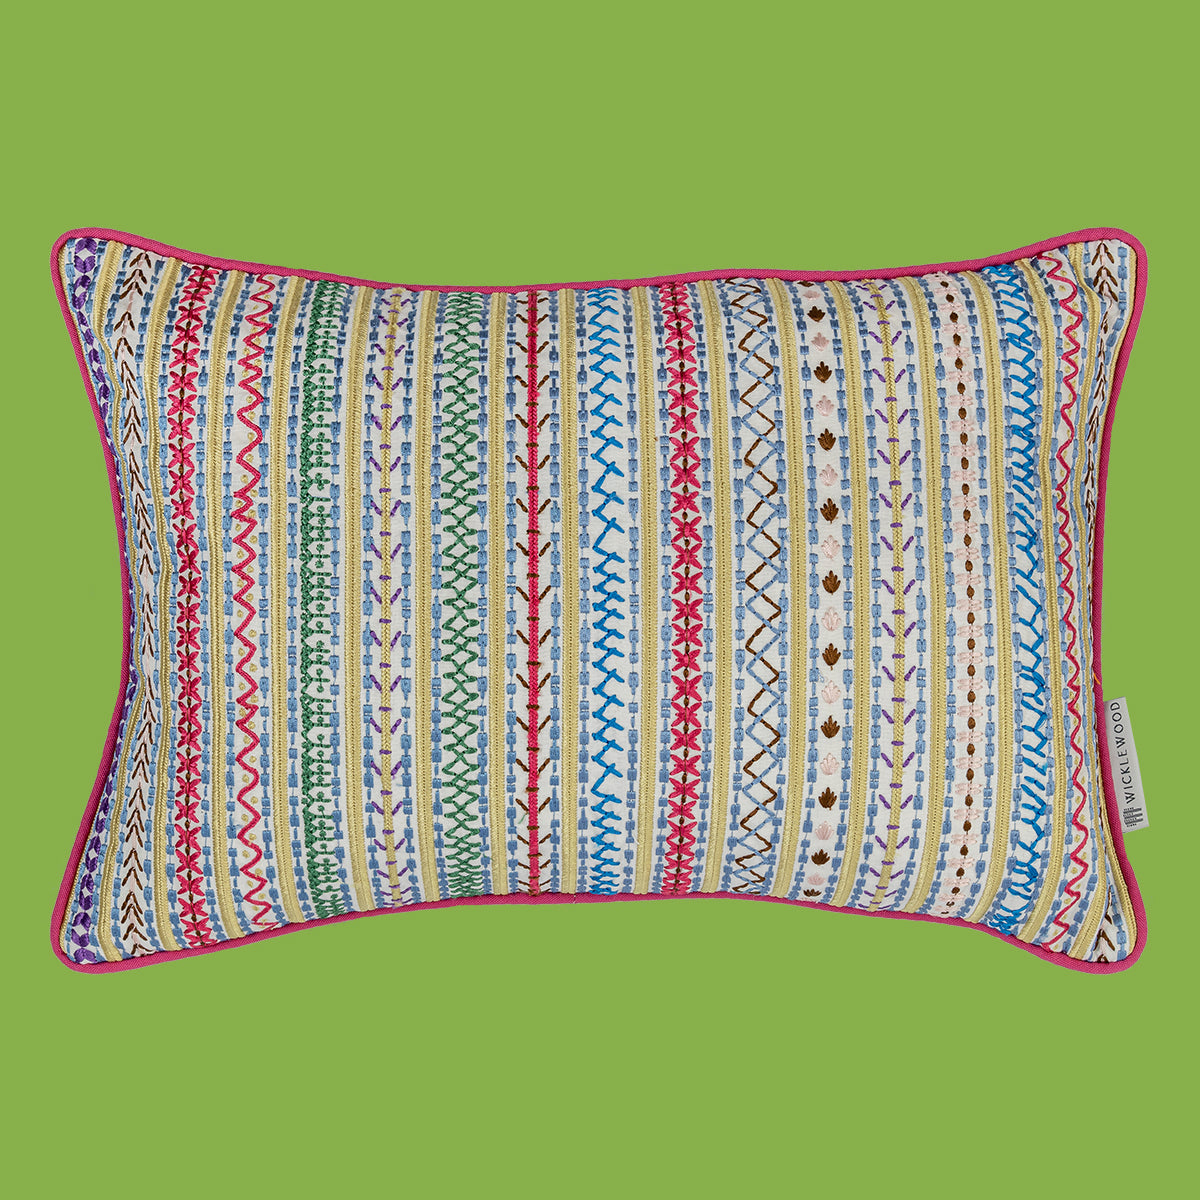 Wicklewood's colourful patterned throw cushions